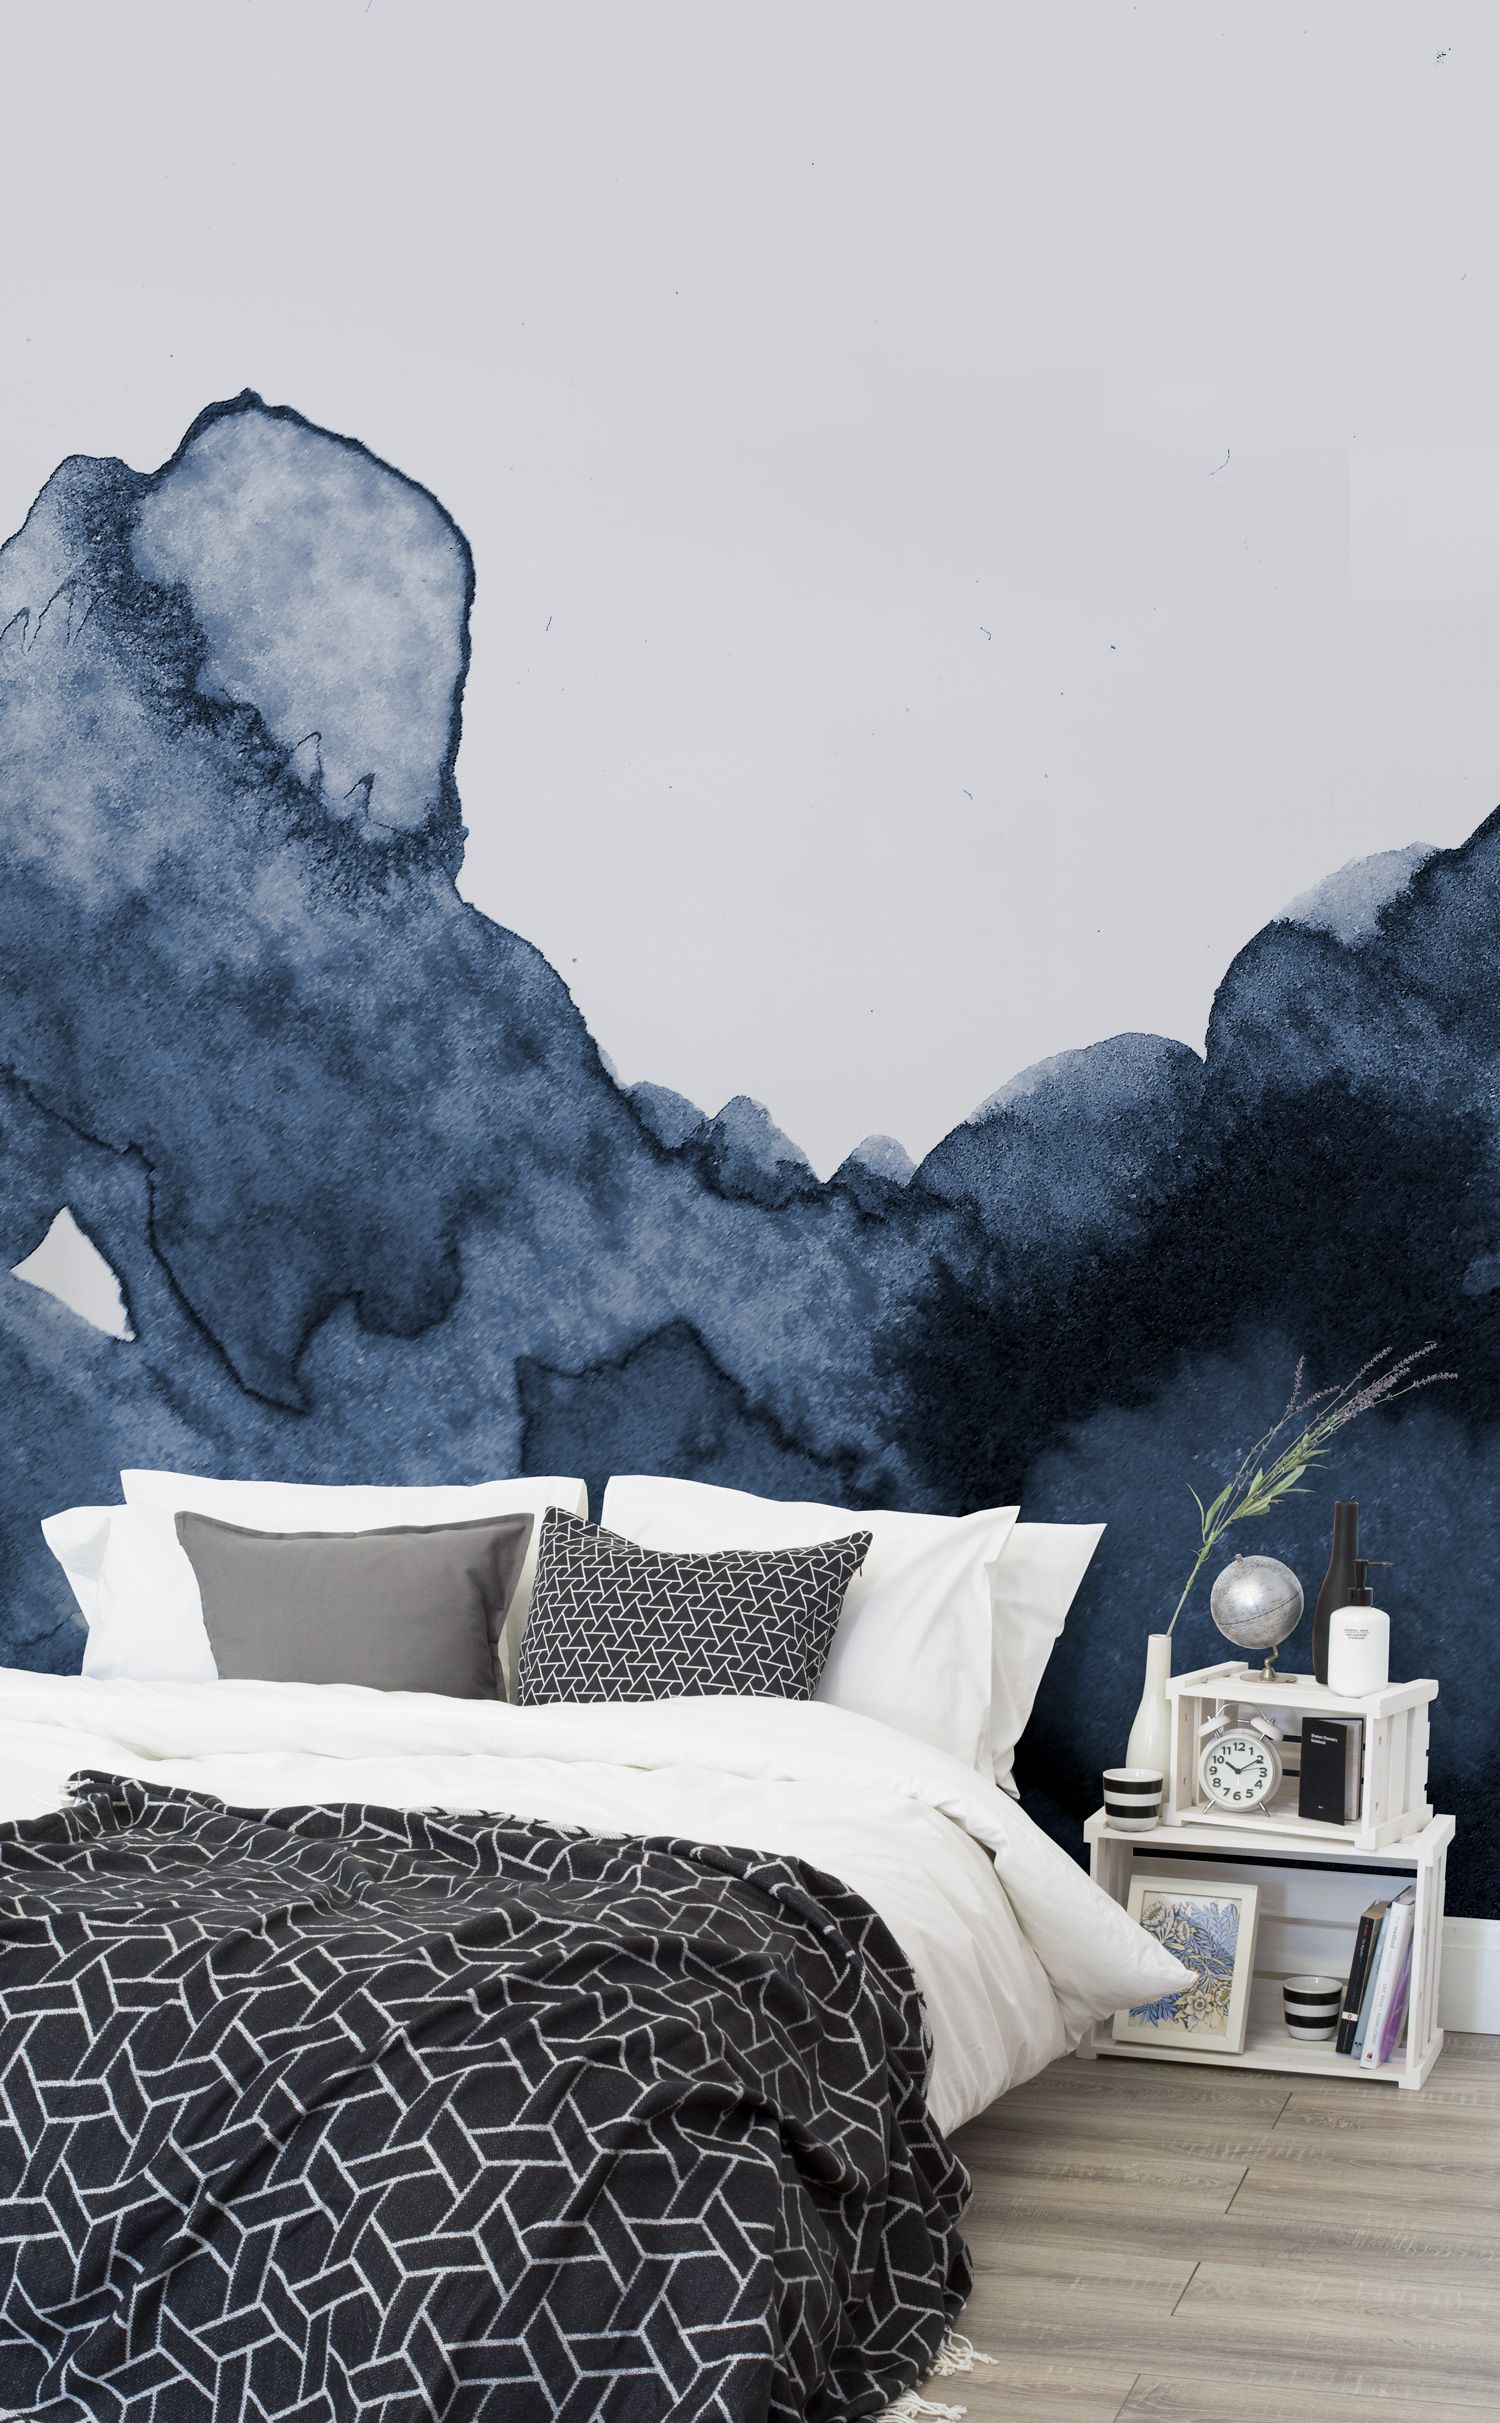 Add a splash of colour to your walls, literally! This watercolor wallpaper design is a playful way to introduce colour to your home, in a stylish and modern way. It's ideal for creating an accent wall in contemporary bedroom spaces.